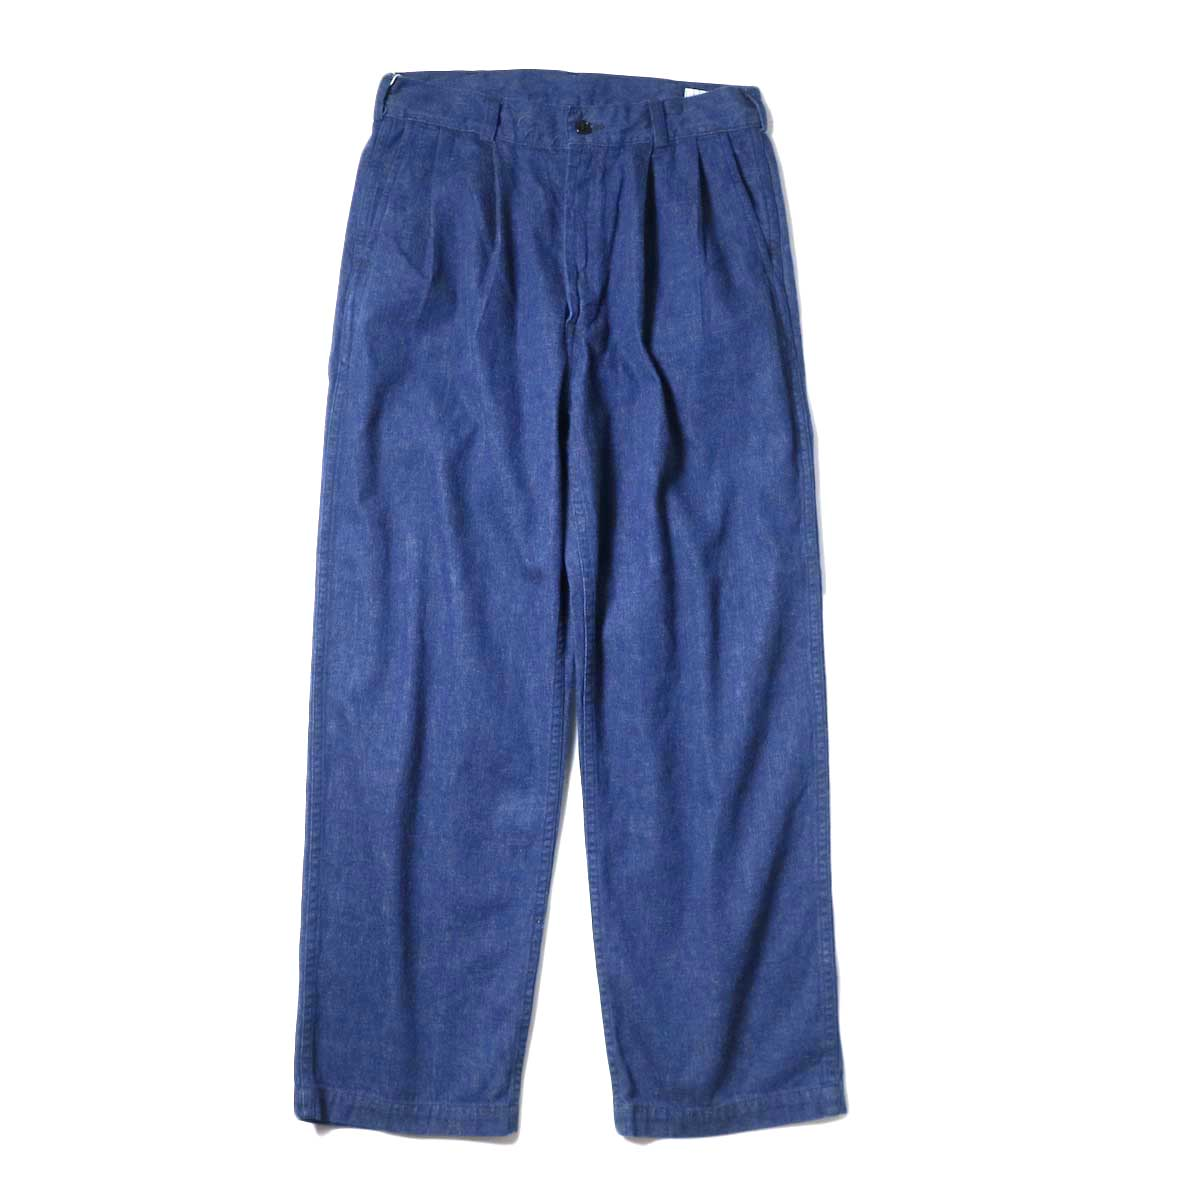 orSlow / TWO TUCK DENIM WIDE TROUSER (Unisex)